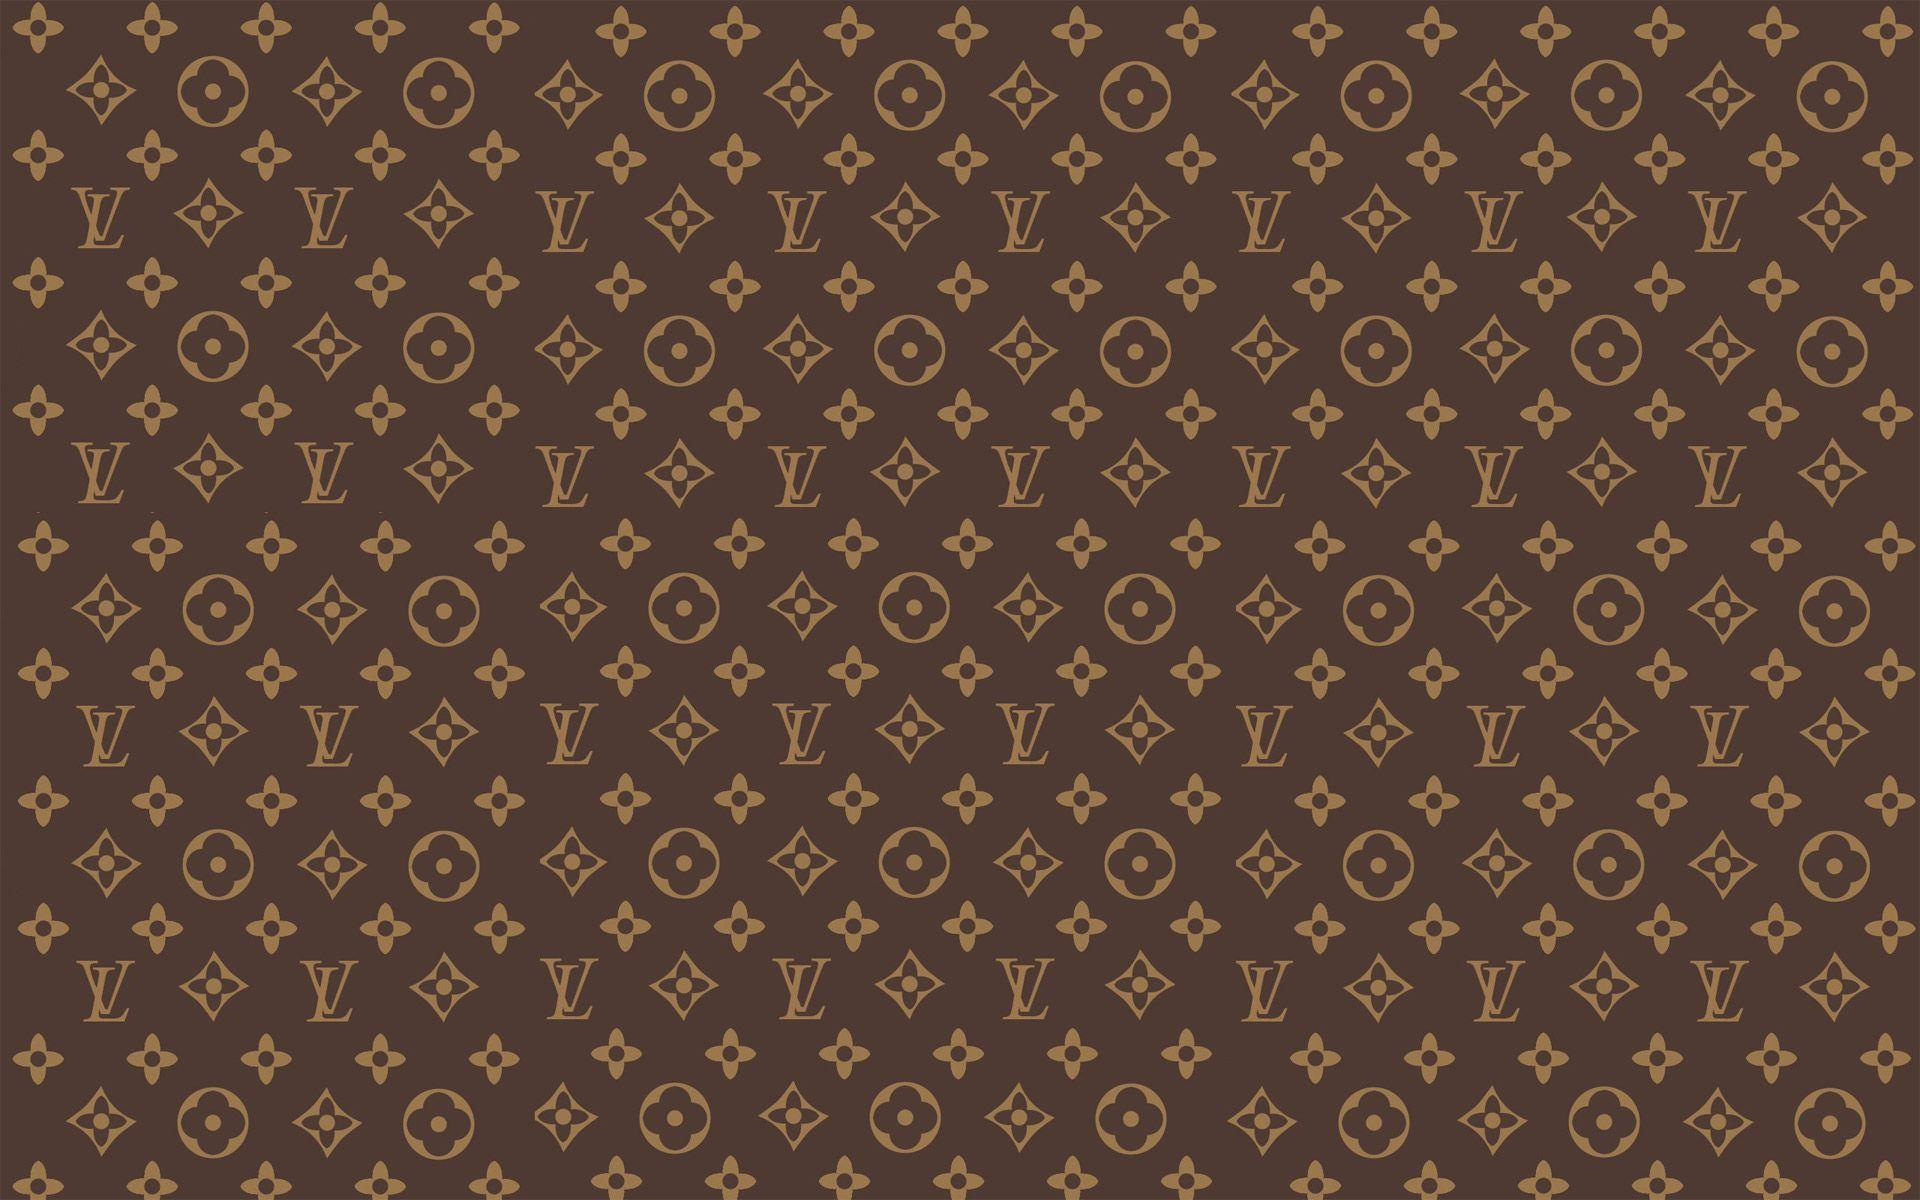 Louis Vuitton Wallpapers - Full HD wallpaper search - page 2